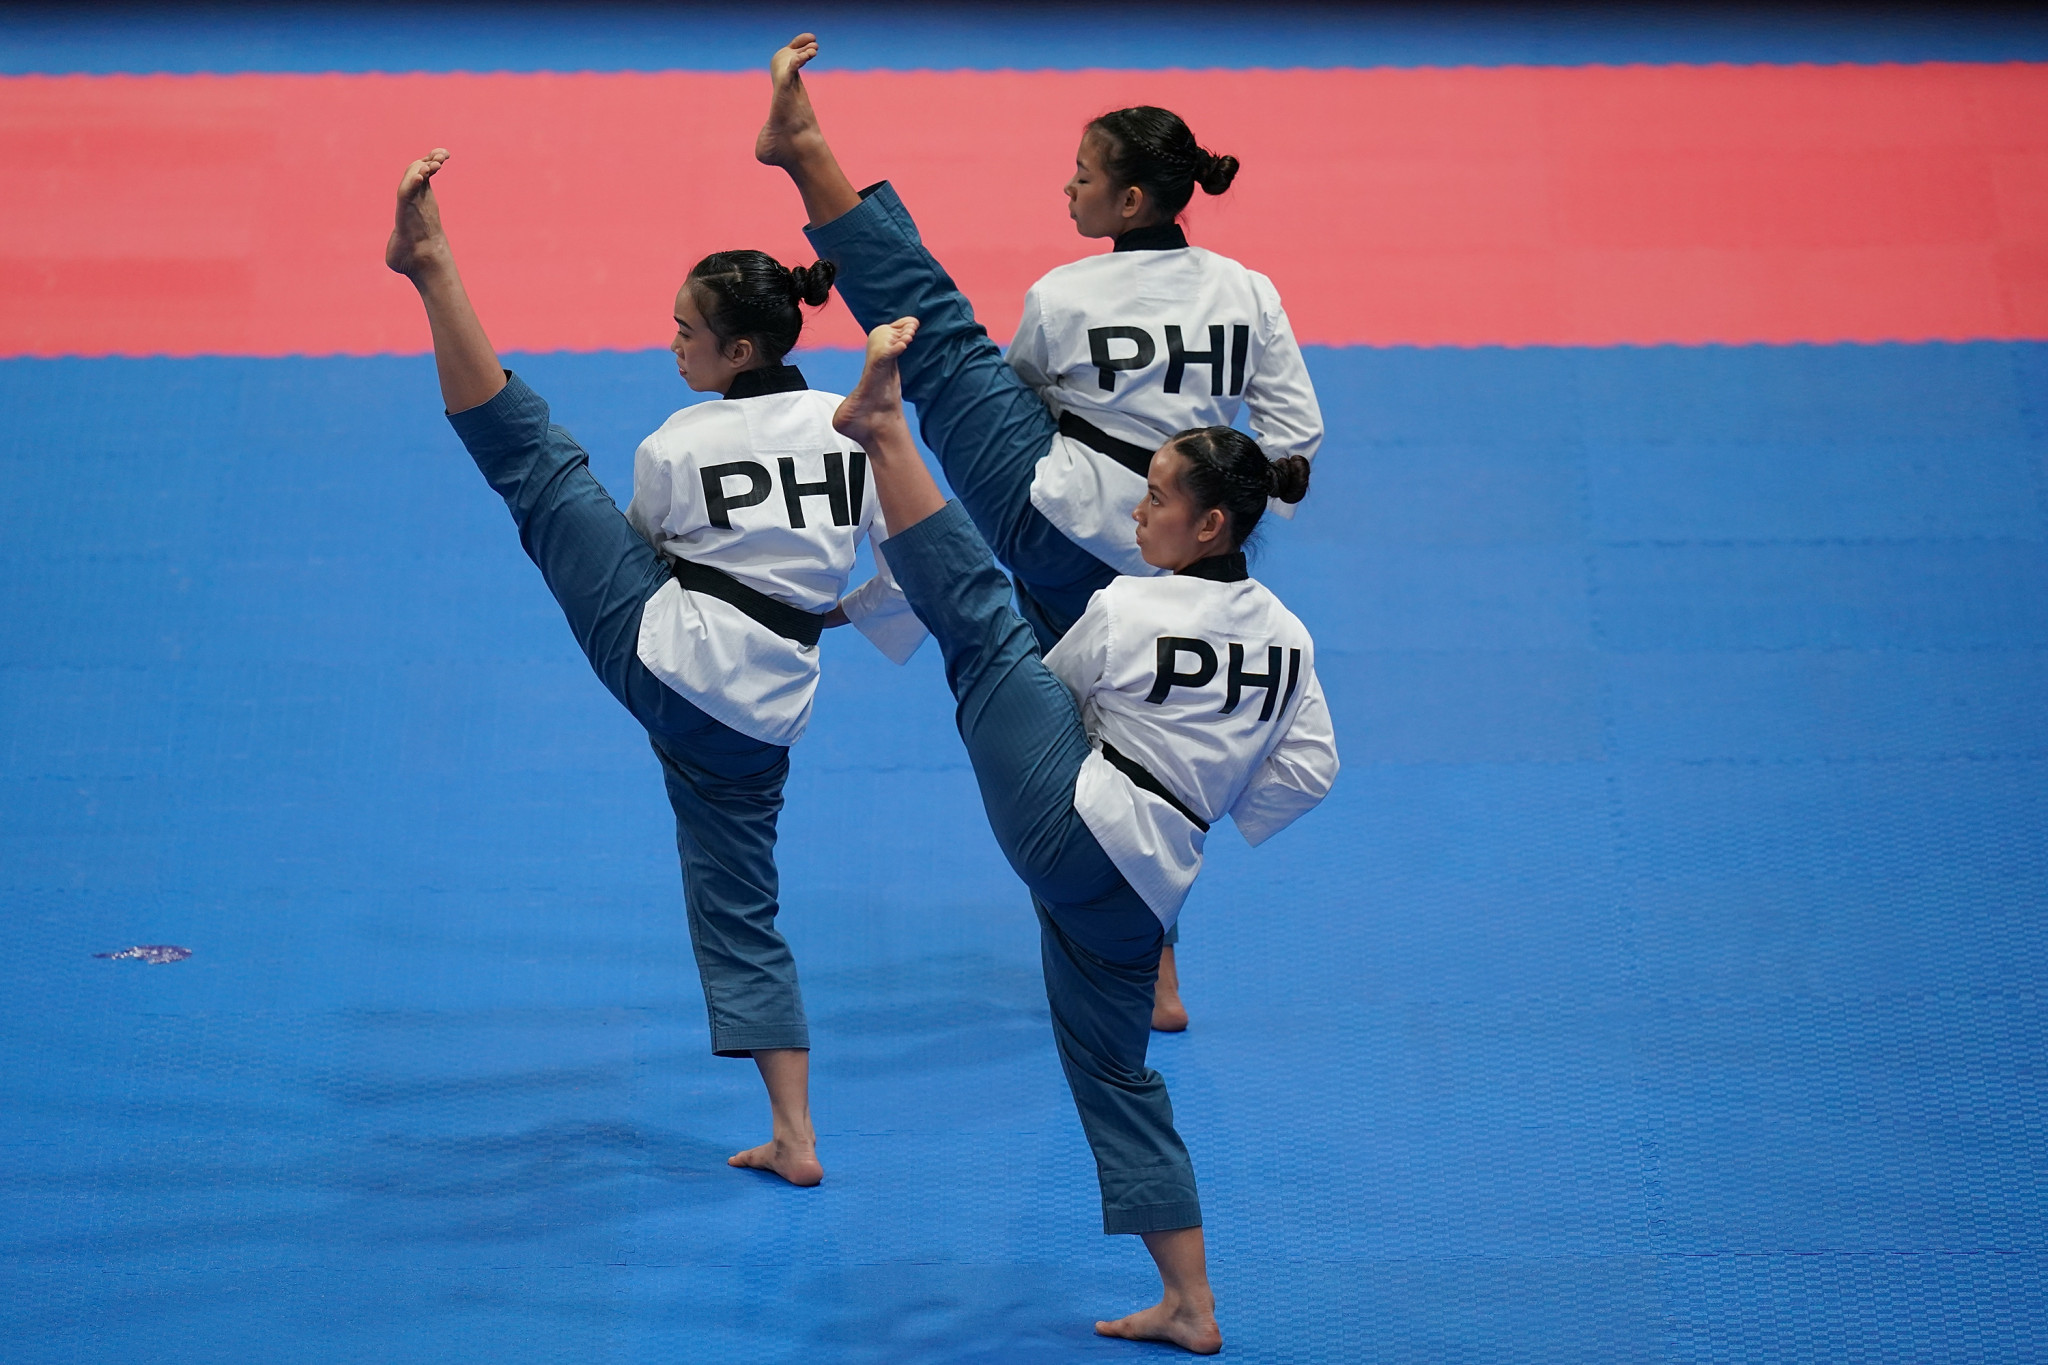 Poomsae taekwondo featured at the Asian Games for the first time in 2018 ©Getty Images